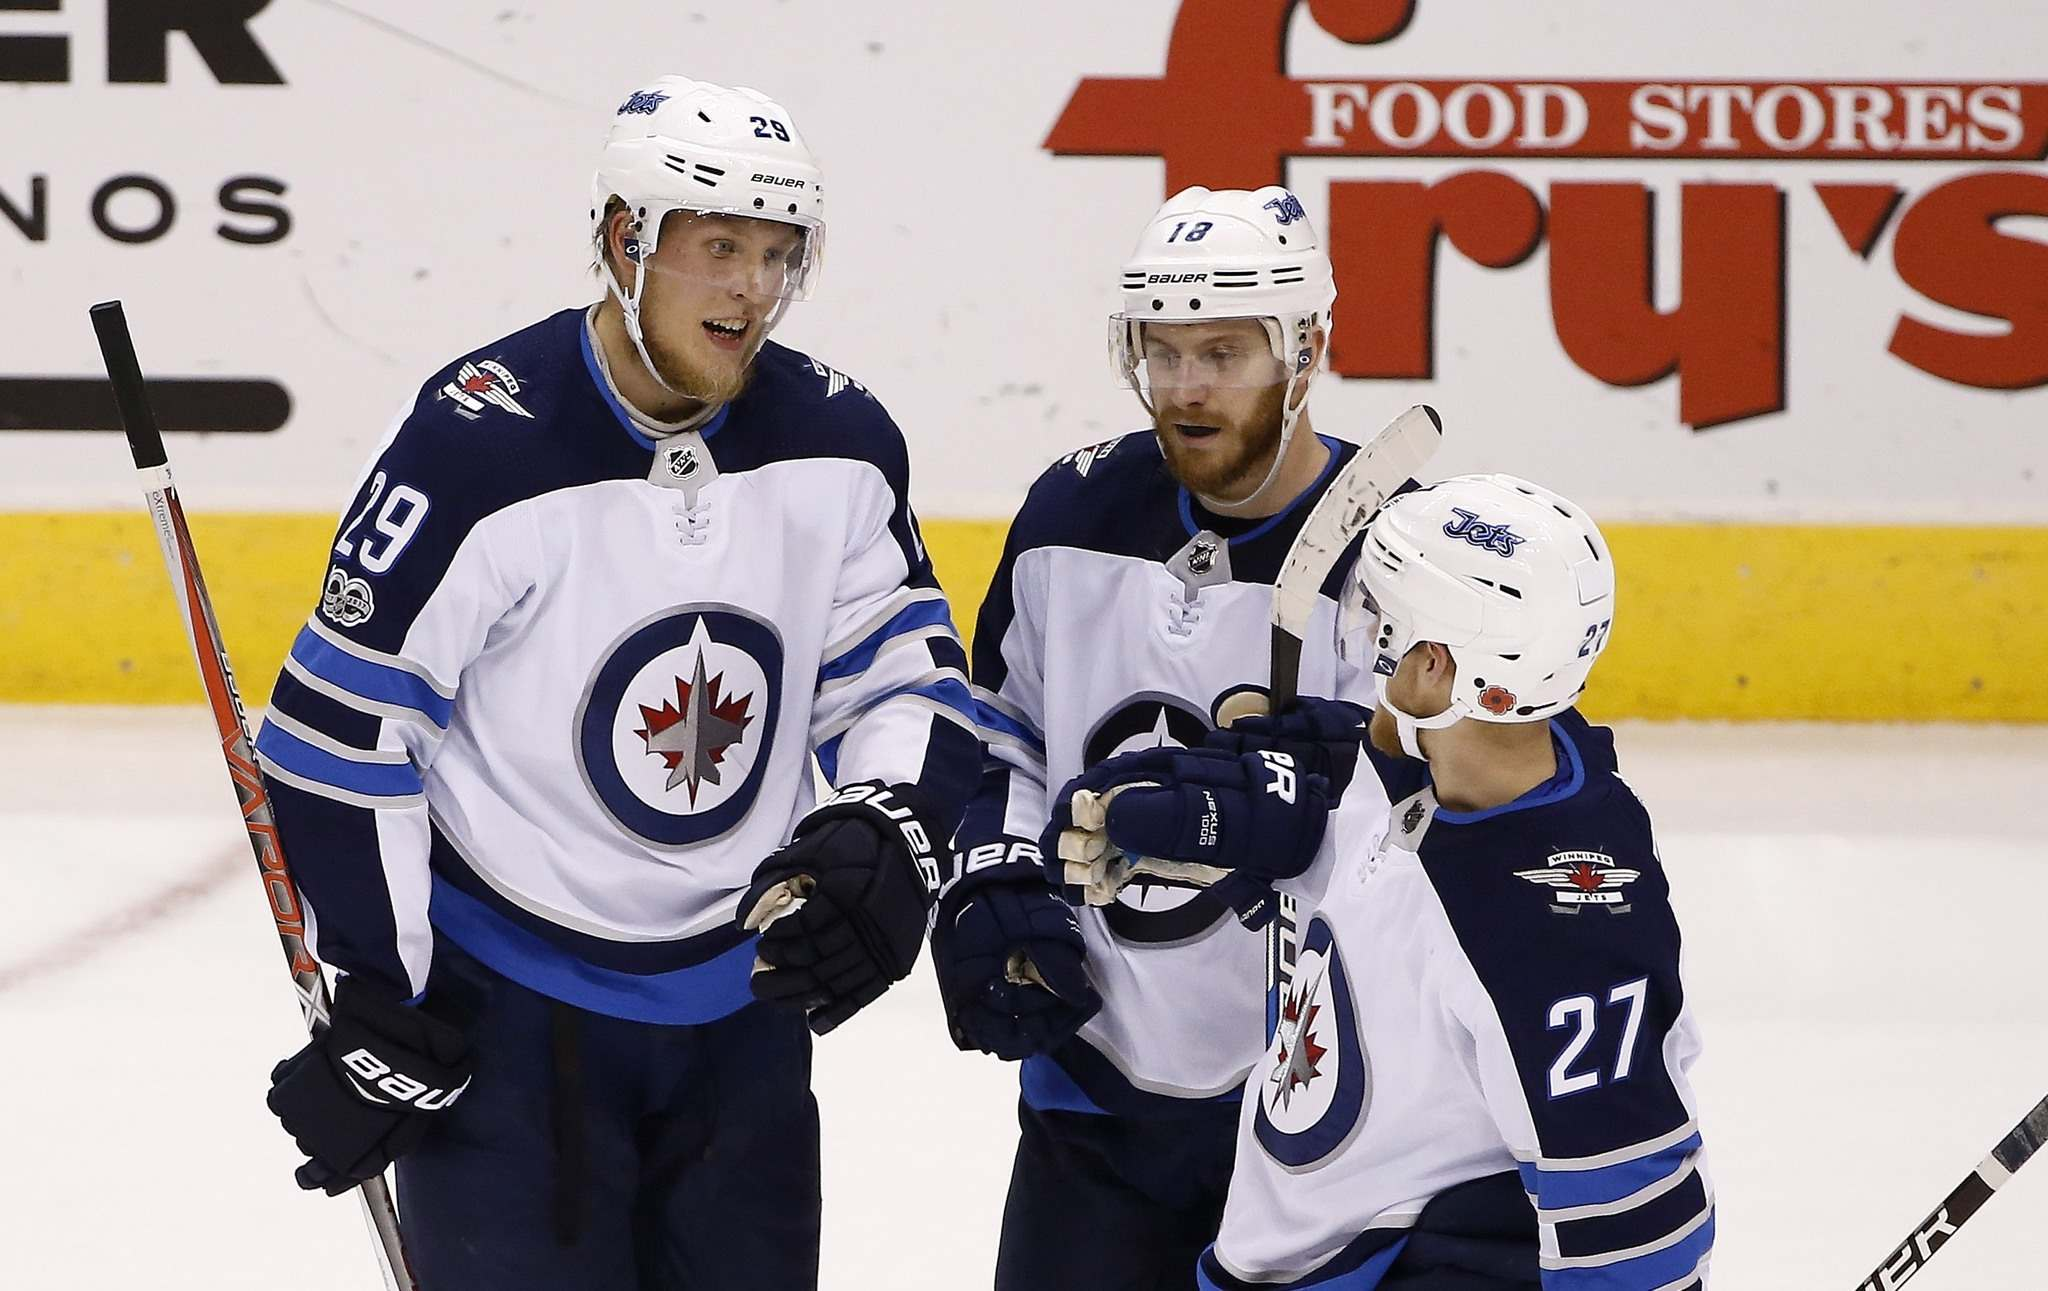 Winnipeg Jets right wing Patrik Laine (29) celebrates his empty net goal against the Arizona Coyotes with Jets left wing Nikolaj Ehlers (27) and Jets center Bryan Little (18) during the third period of an NHL hockey game Saturday, Nov. 11, 2017, in Glendale, Ariz. The Jets defeated the Coyotes 4-1. (AP Photo/Ross D. Franklin)</p>